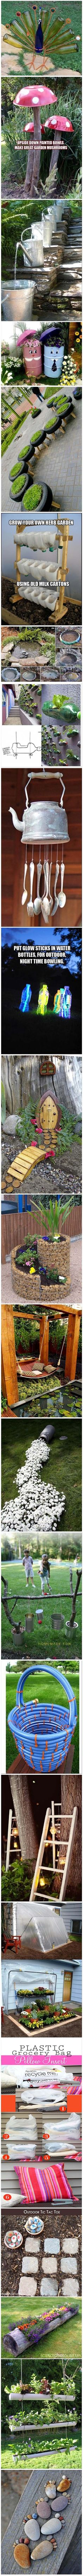 Simple ideas for reusing what you have  or can easily get. Generally low cost & sometimes even free.